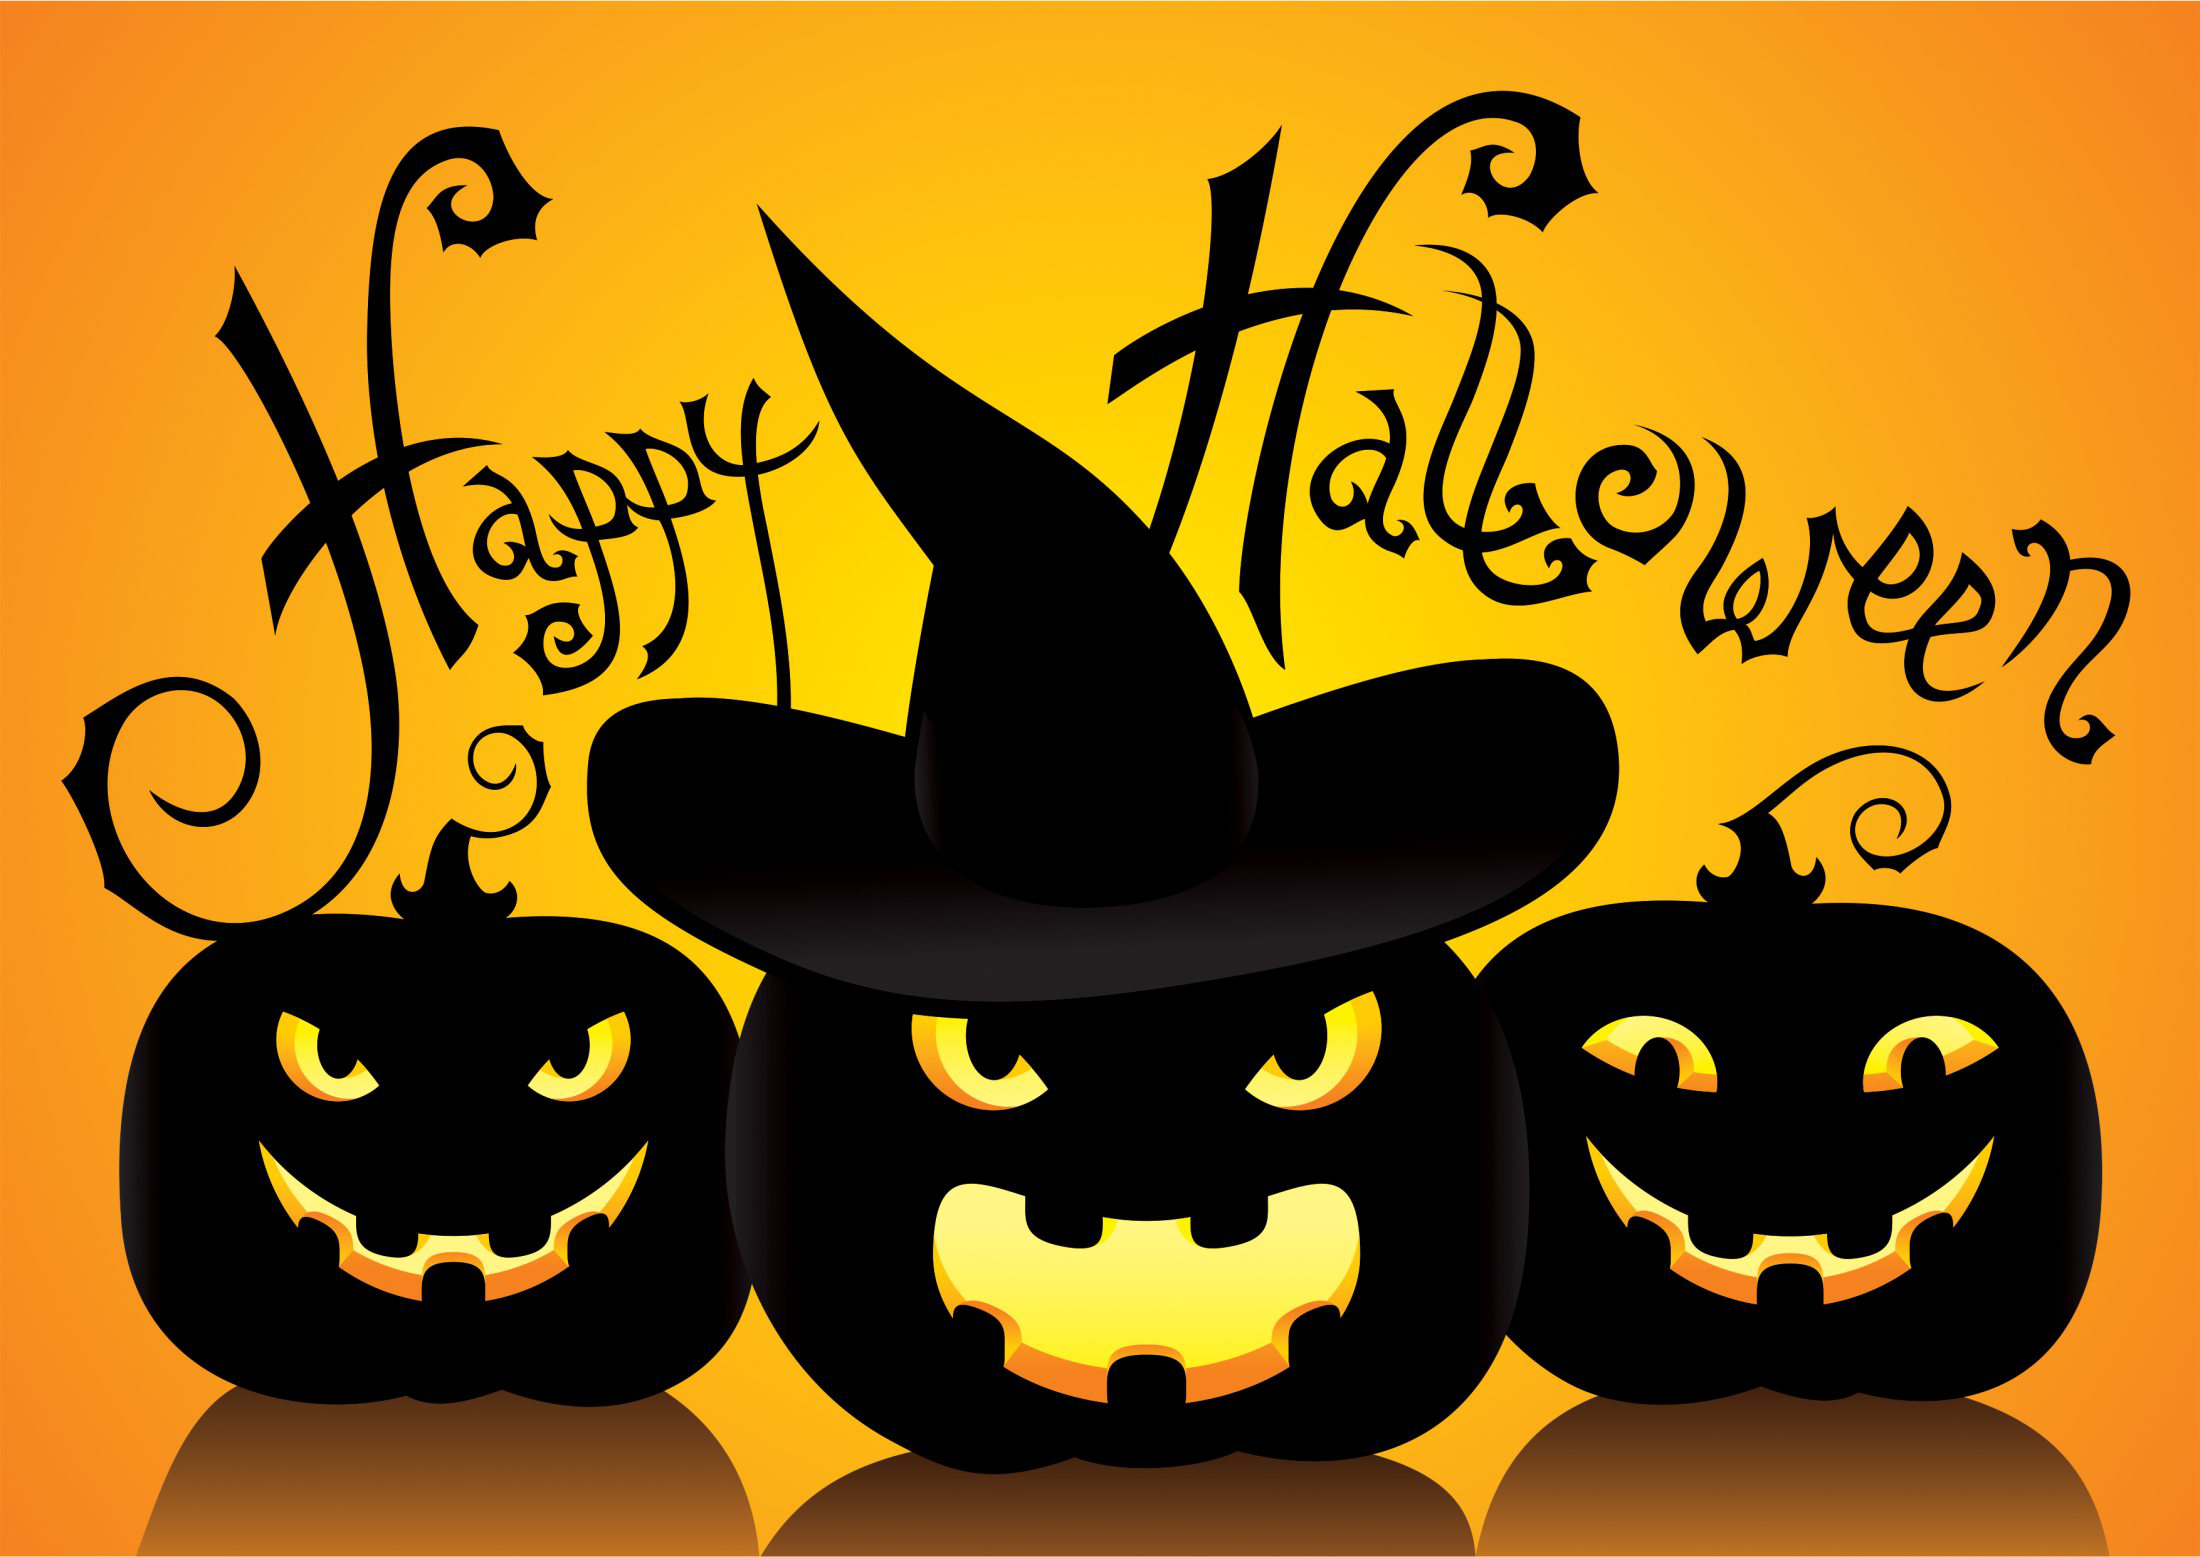 halloween fractales dans photo - photo #30